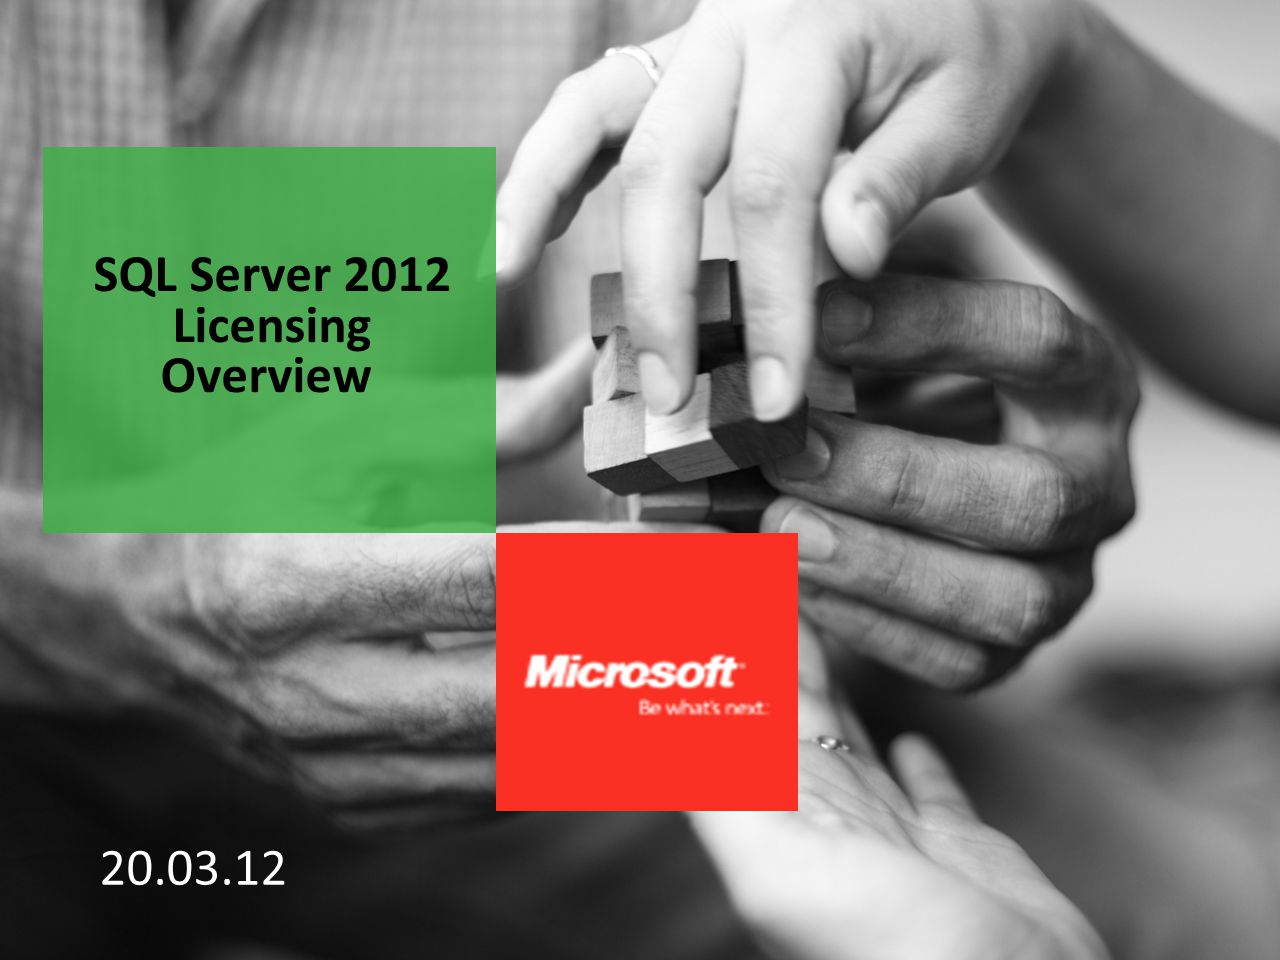 20.03.12 SQL Server 2012 Licensing Overview